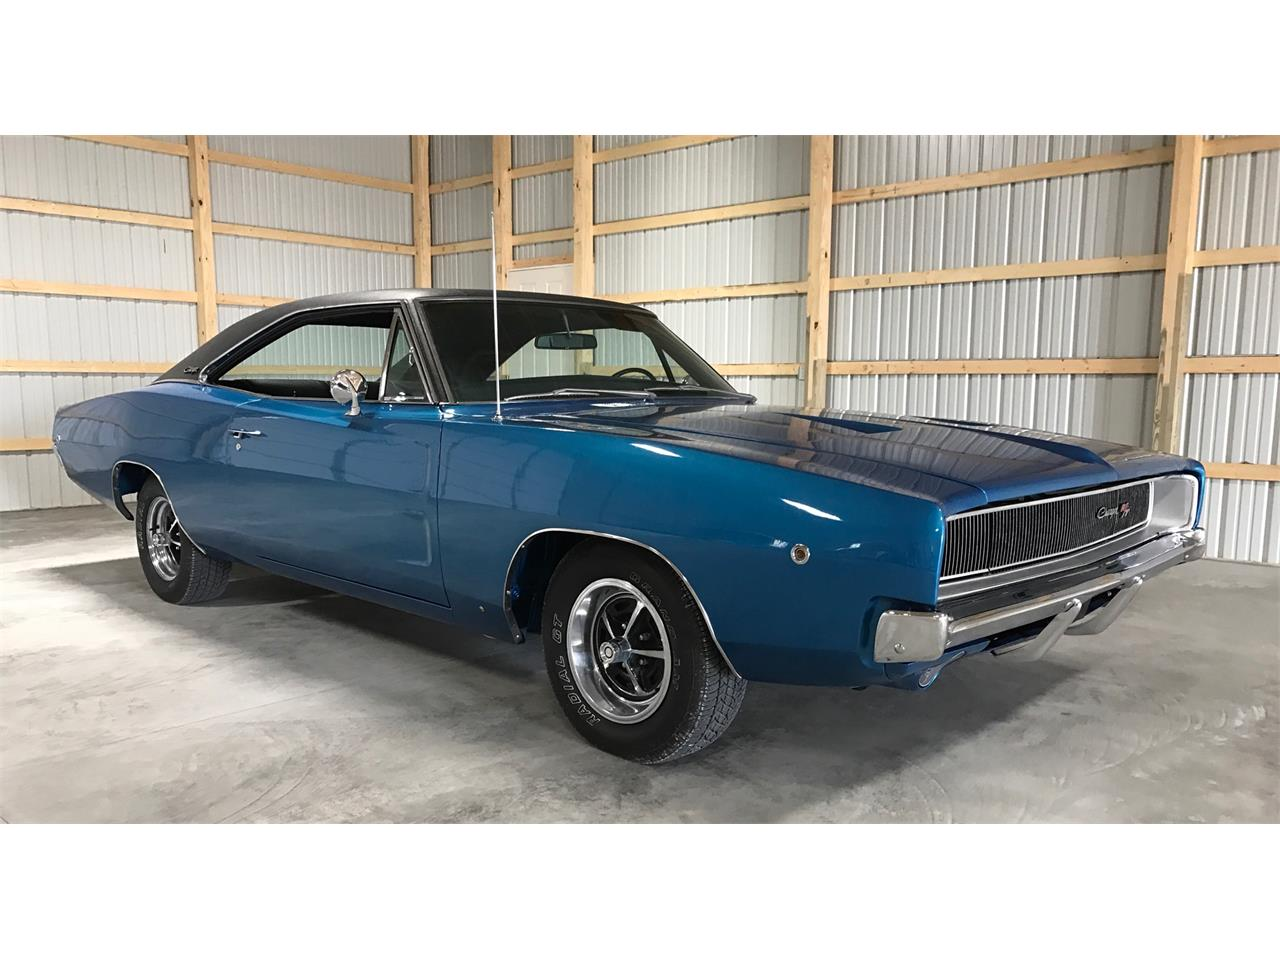 1968 Dodge Charger For Sale Cc 1068134 Drag Car Large Picture Of 68 5950000 Mw6e